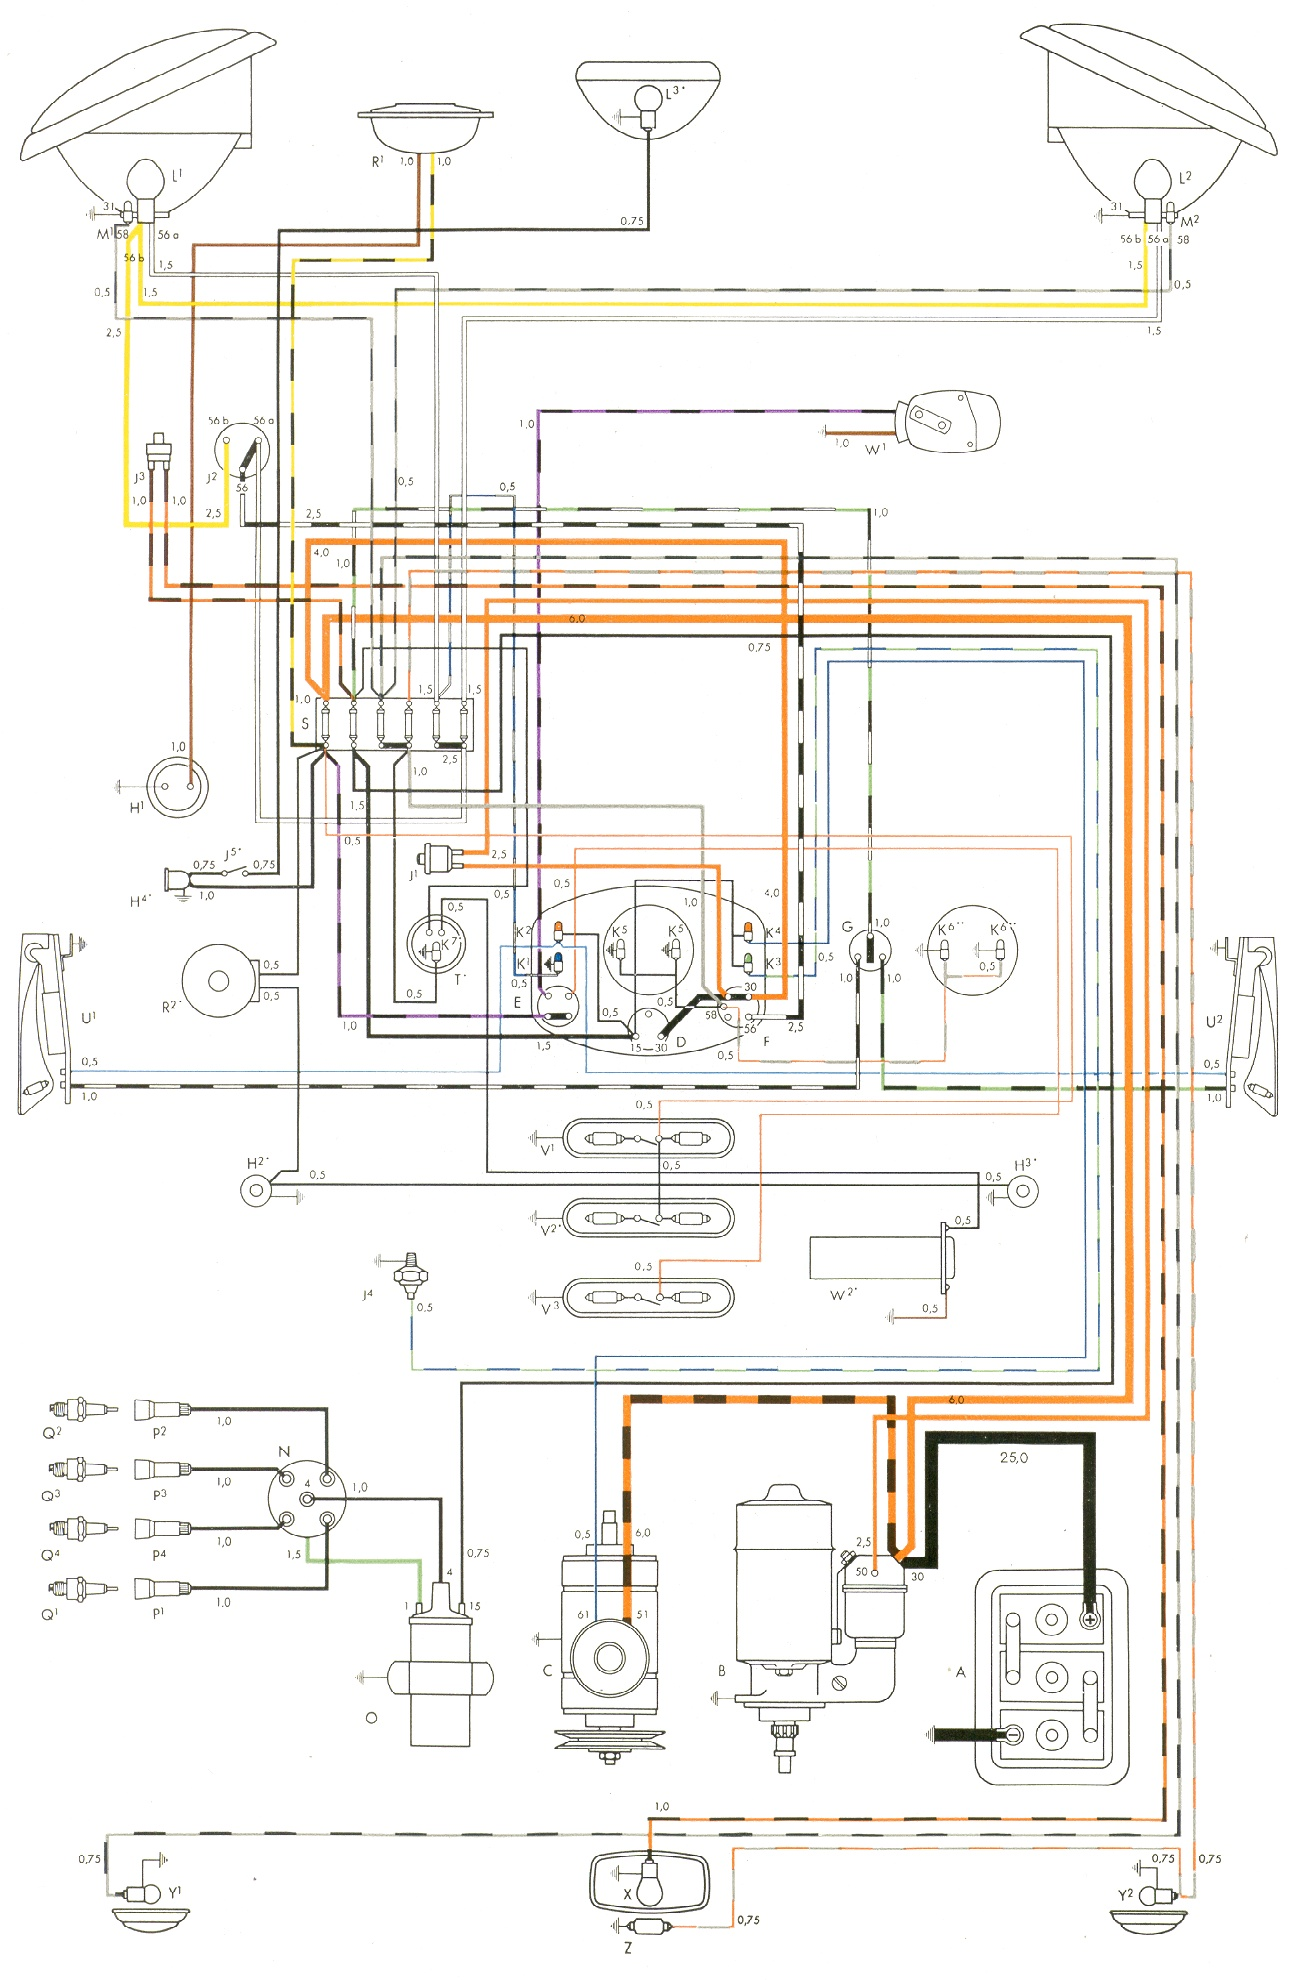 beetle coil wiring engine image for user manual vw bus wiring diagram vw engine image for user manual beetle